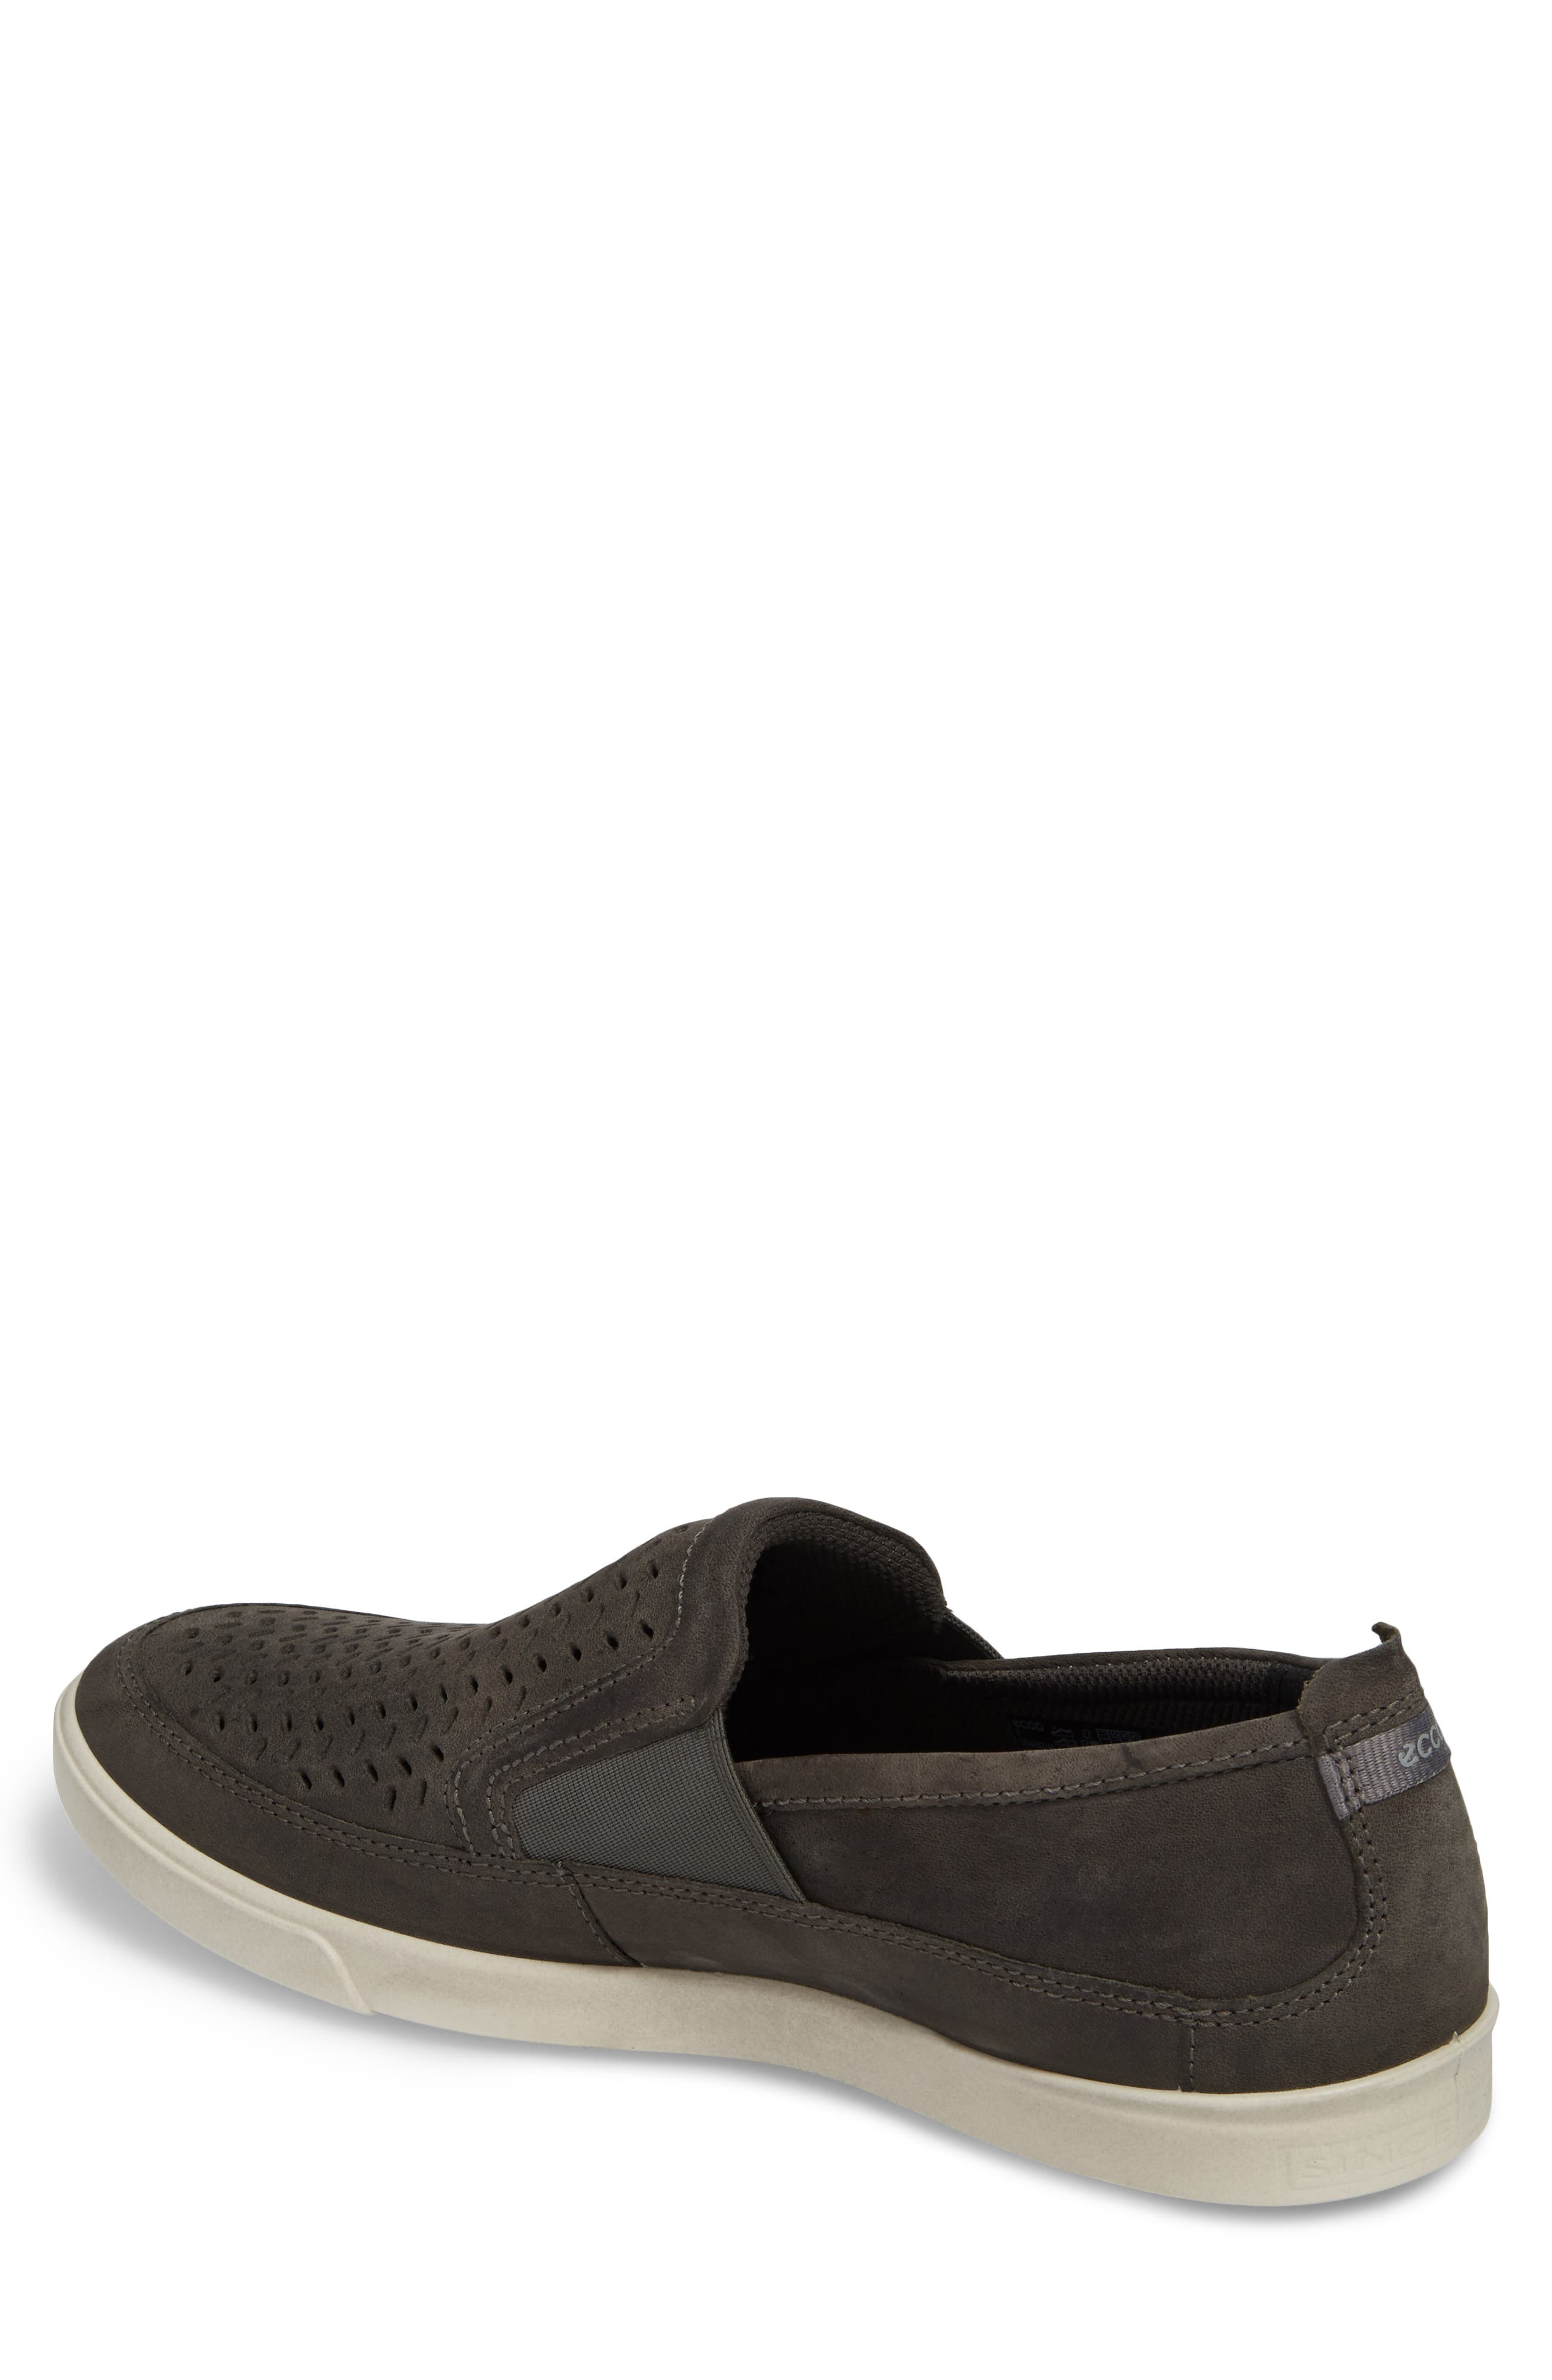 'Collin' Perforated Slip On Sneaker,                             Alternate thumbnail 2, color,                             Titanium Leather